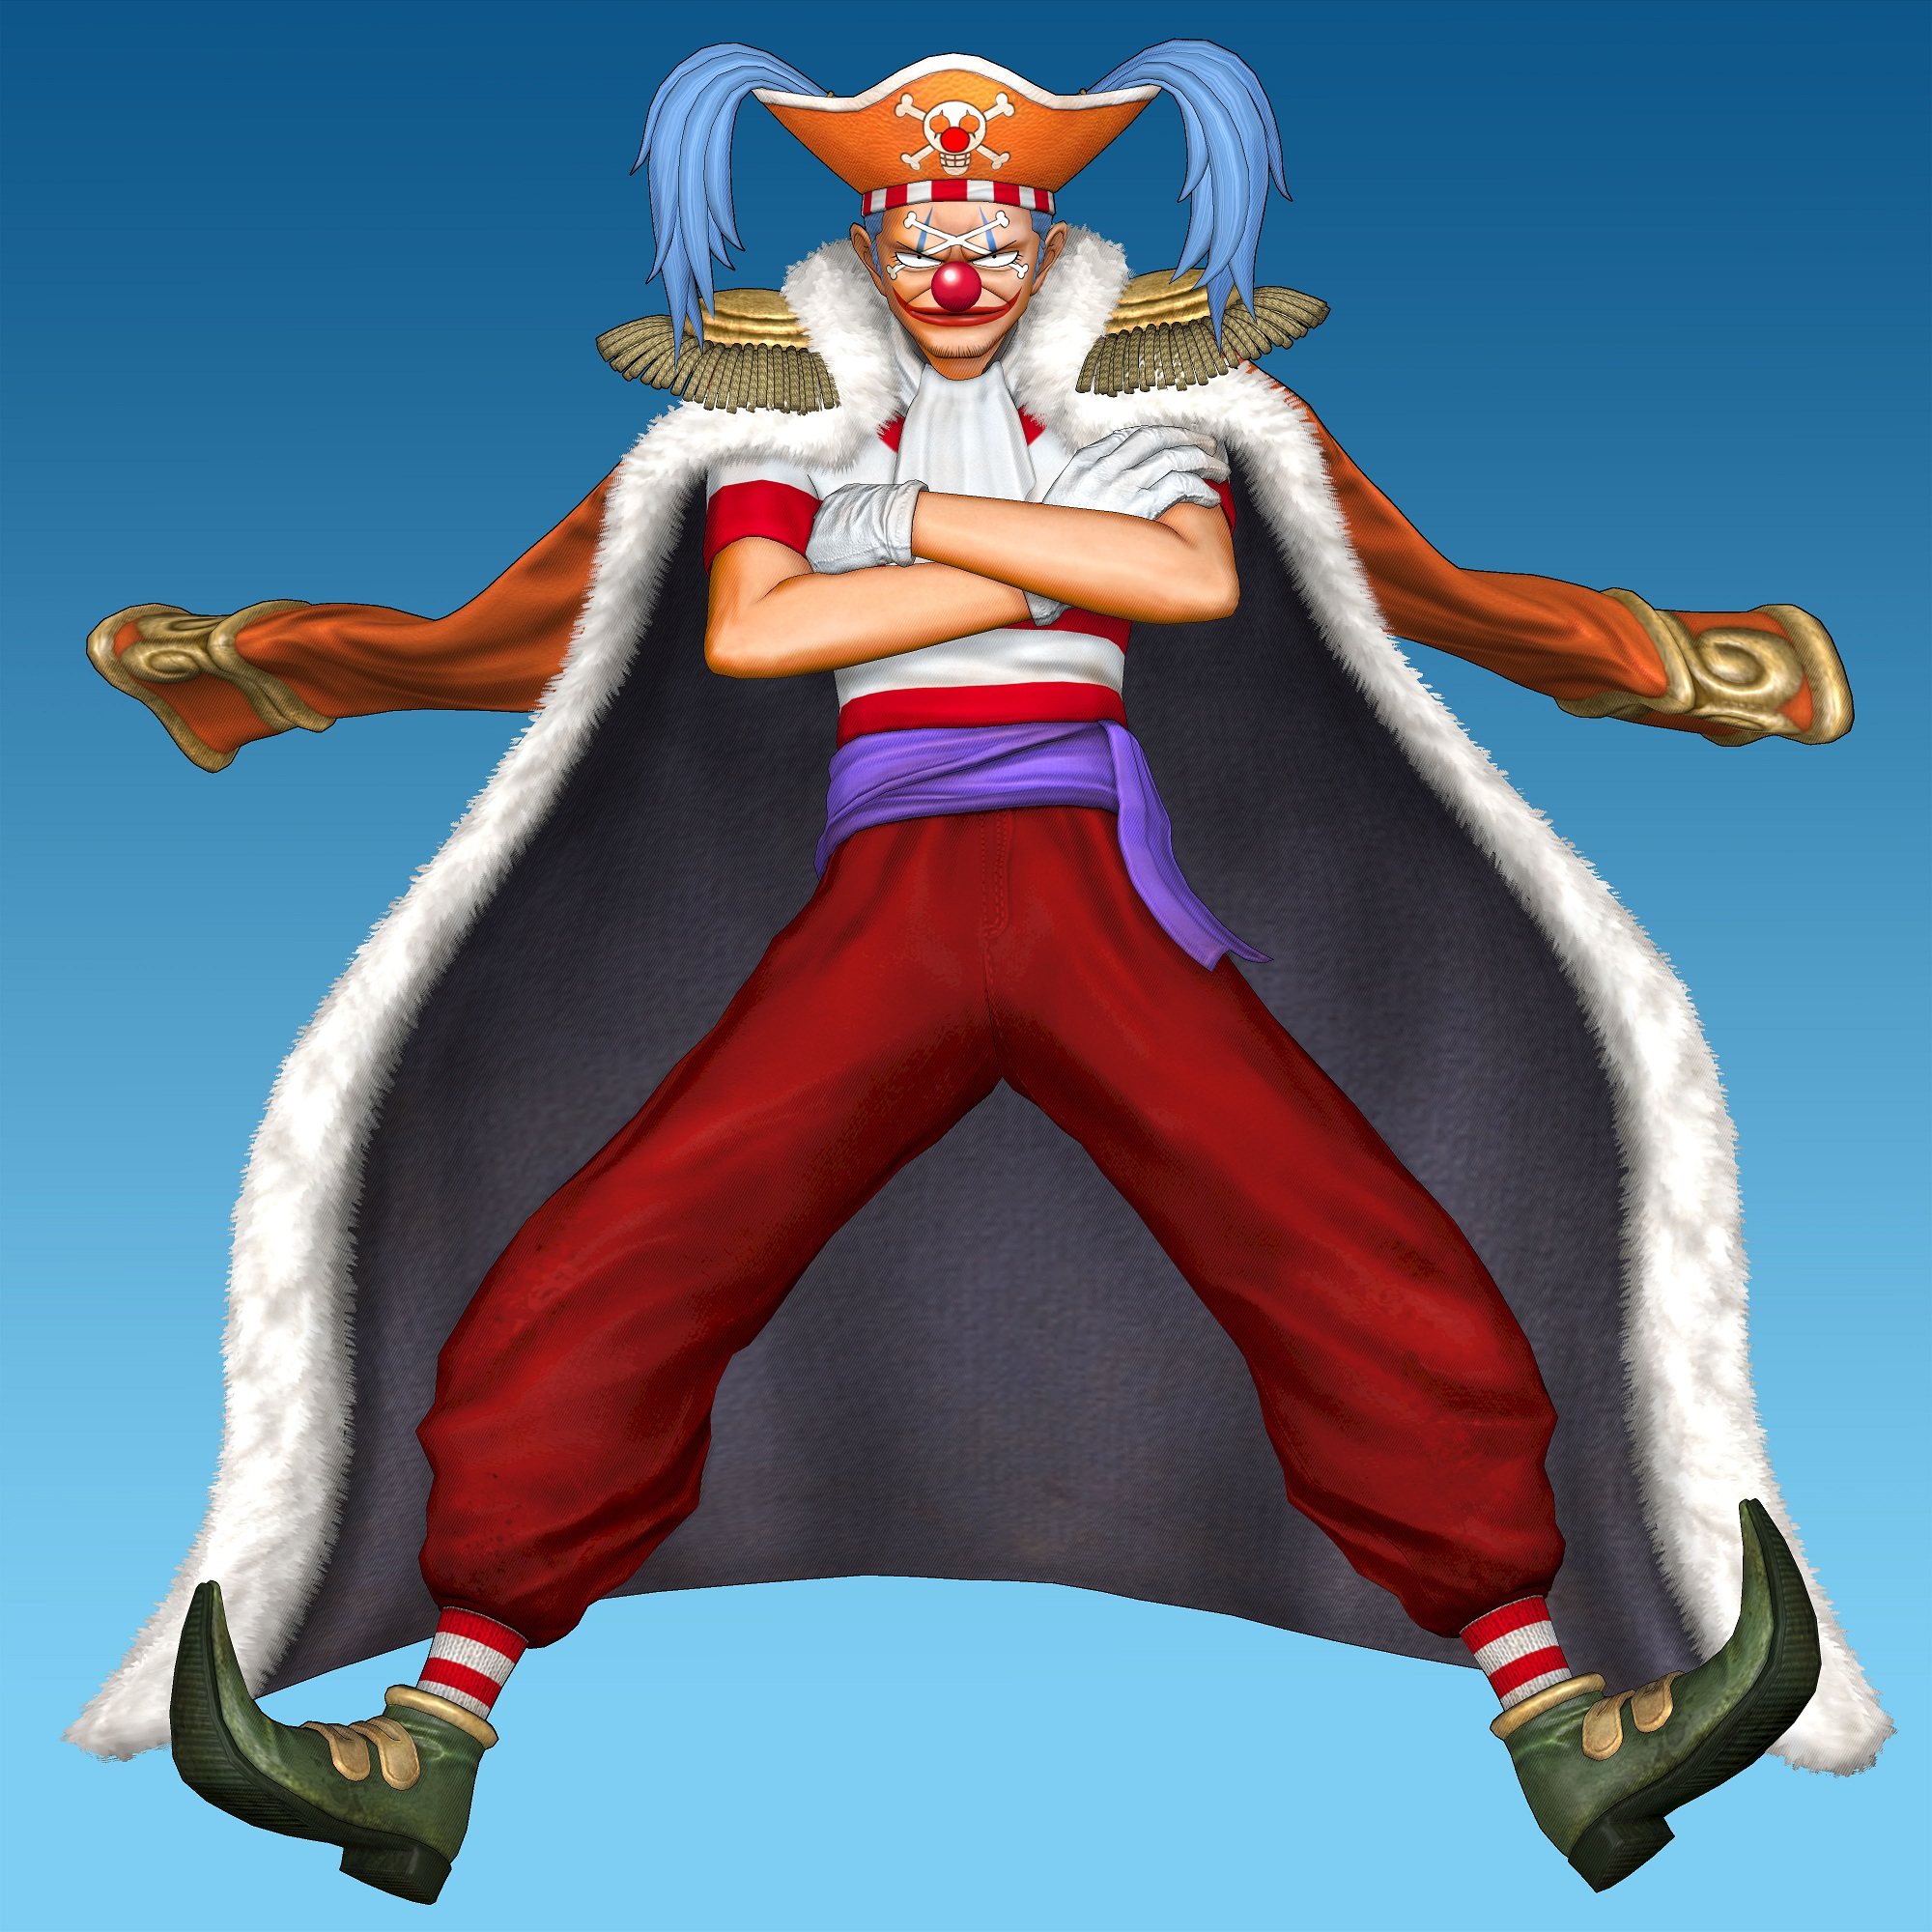 Ace Pirate Warriors: One Piece: Pirate Warriors 2 Screens Show Off Ace, Buggy